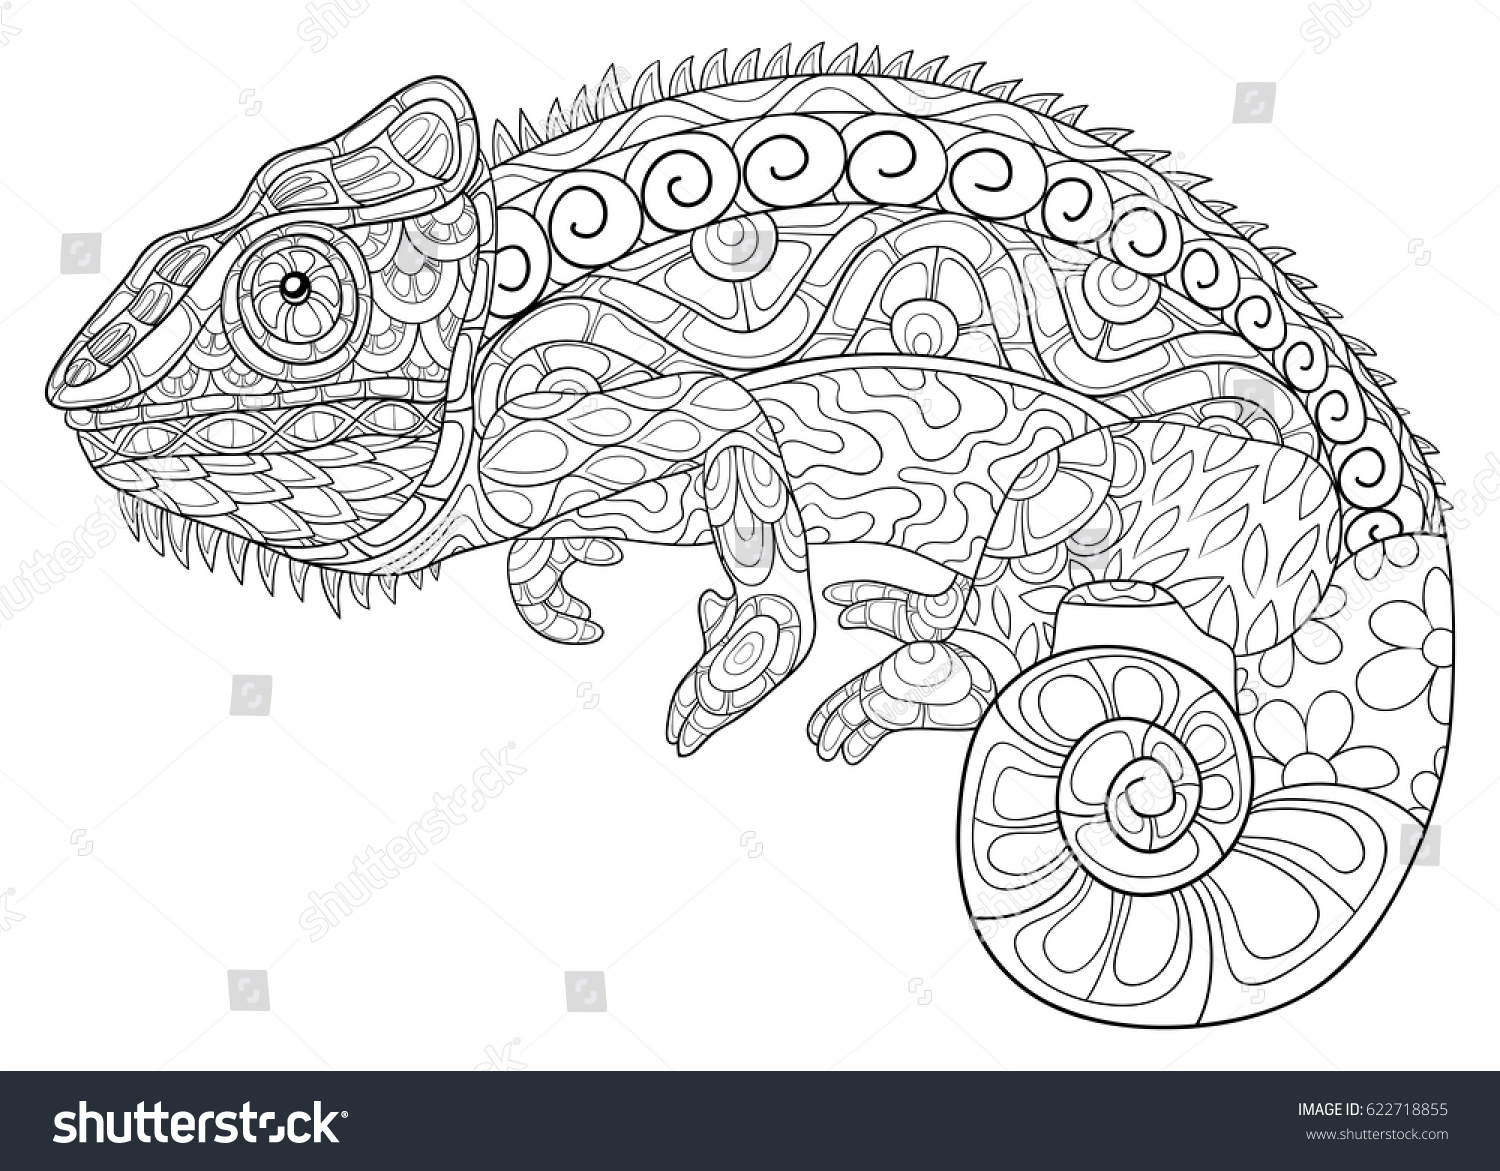 Adult Coloring Page Chameleon Zen Art Stock Vector (Royalty Free ...